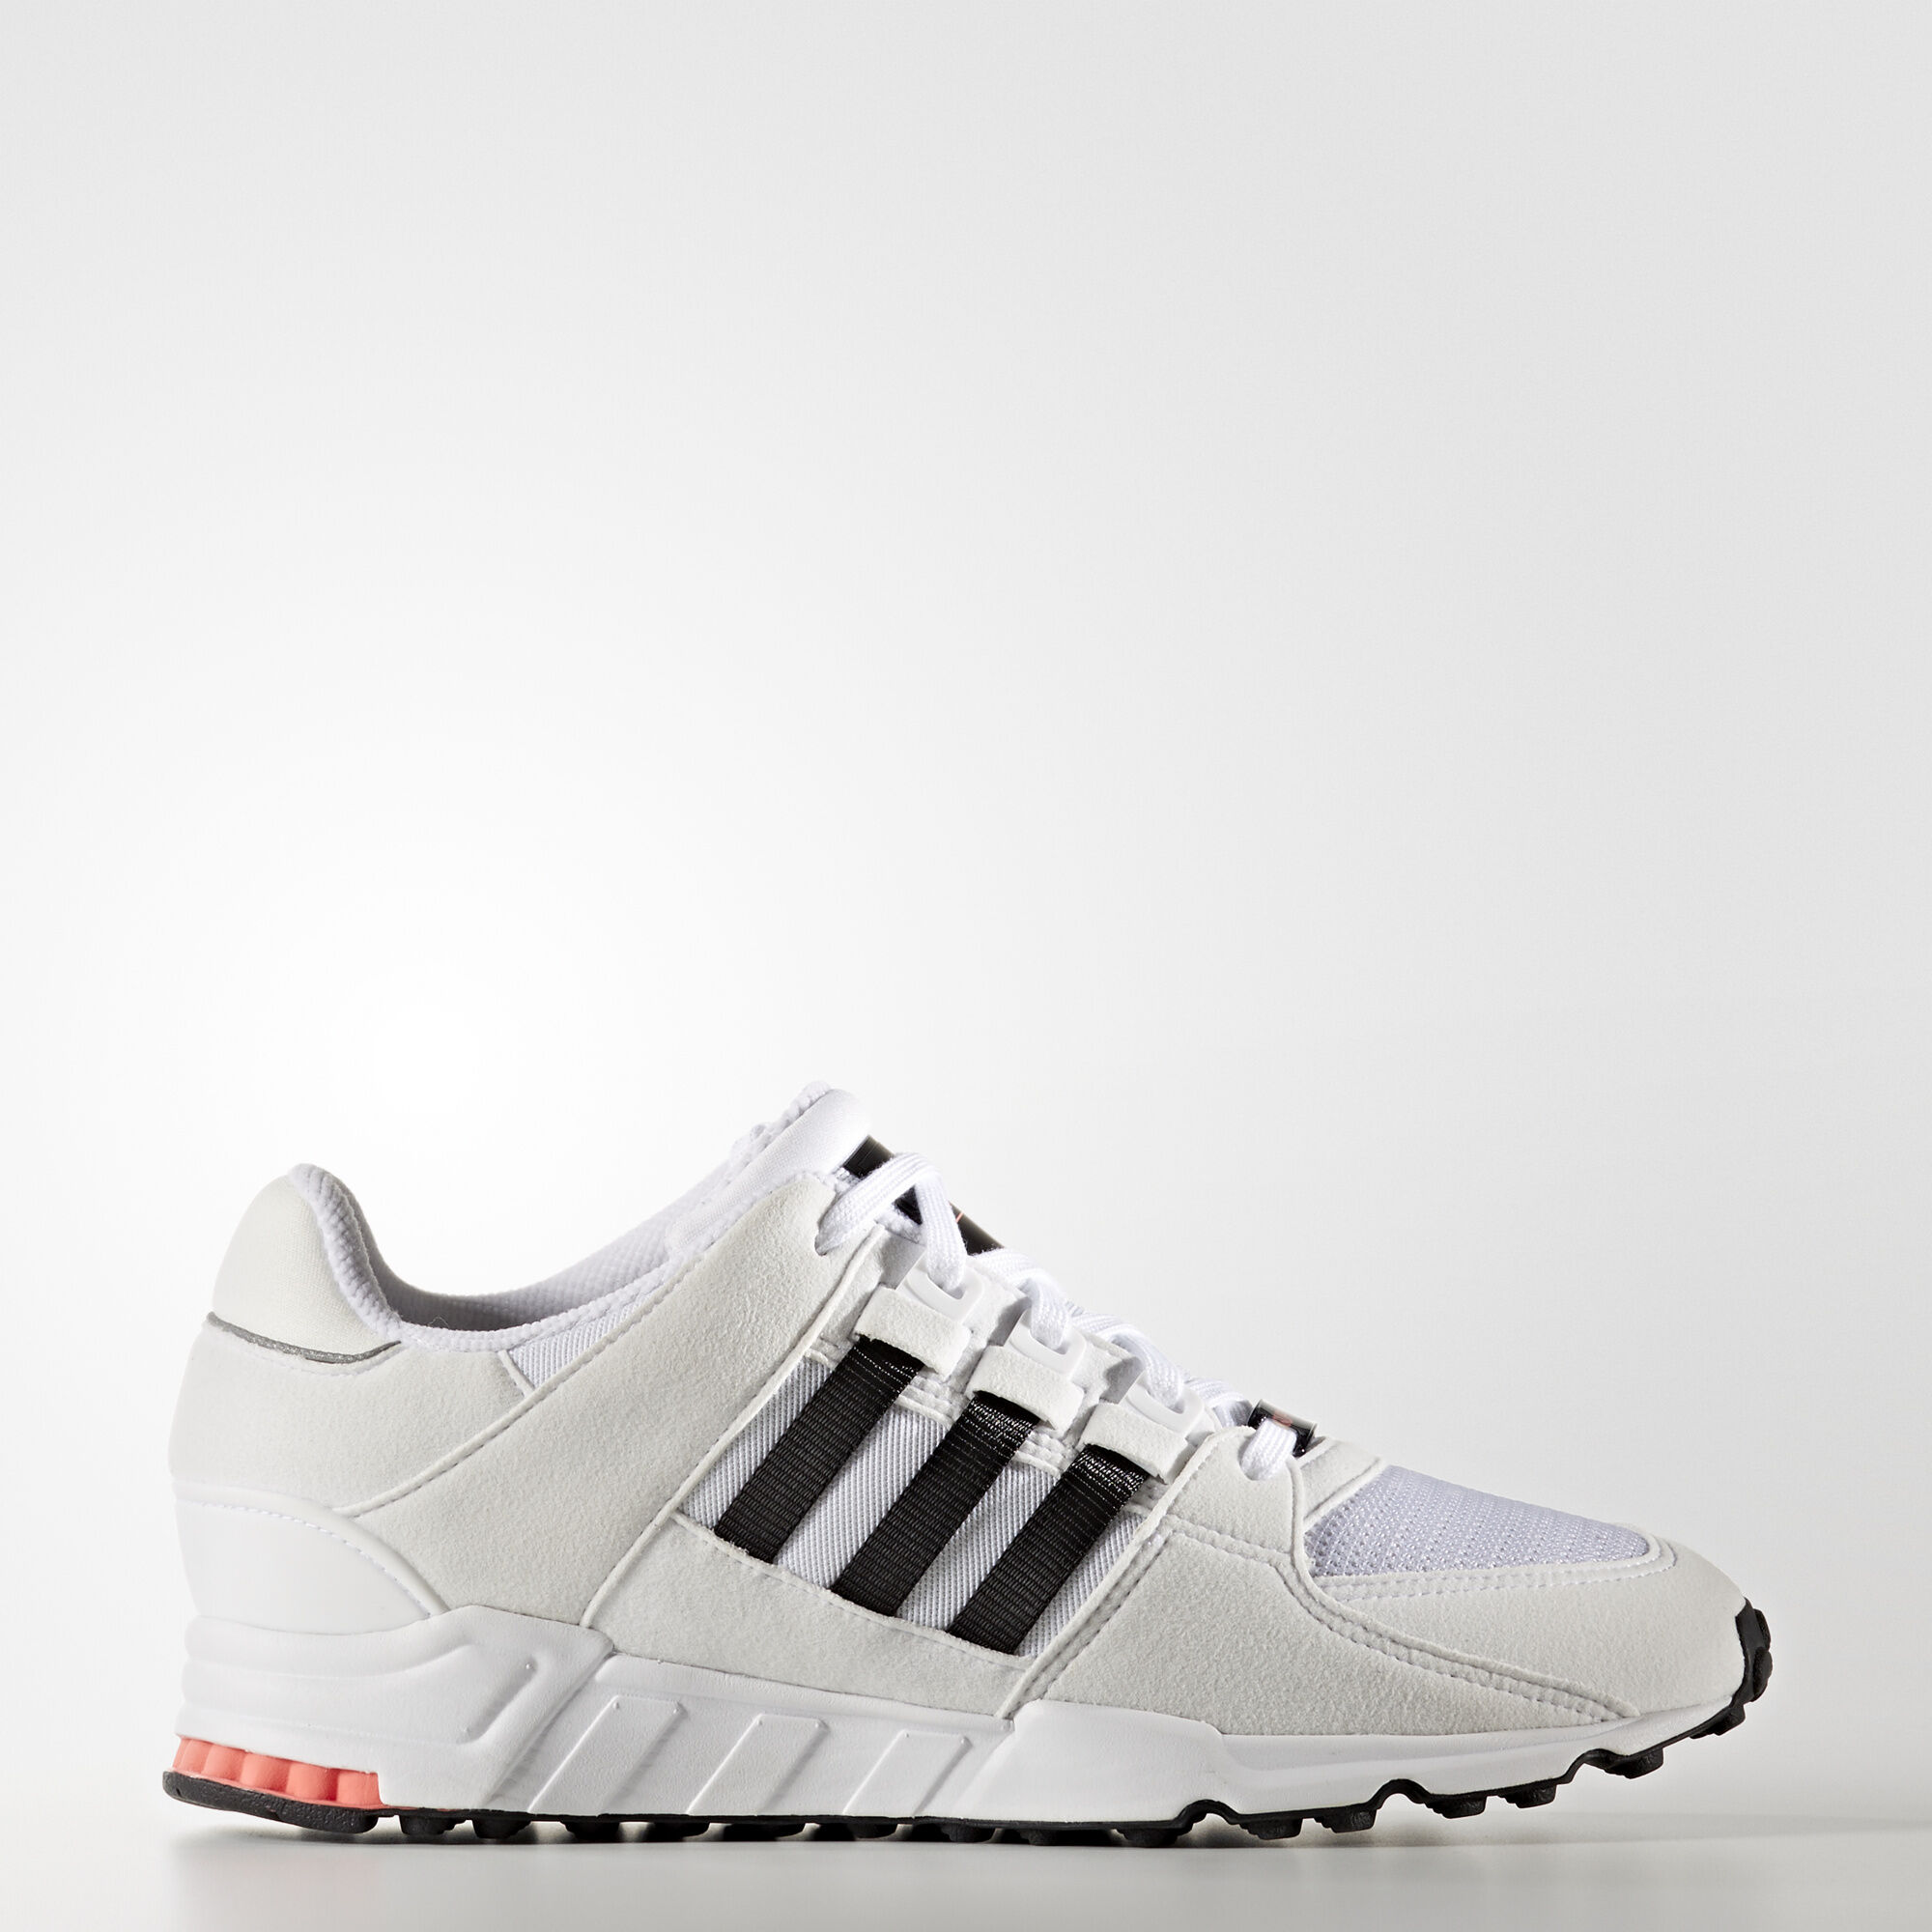 adidas EQT Men Foot Locker